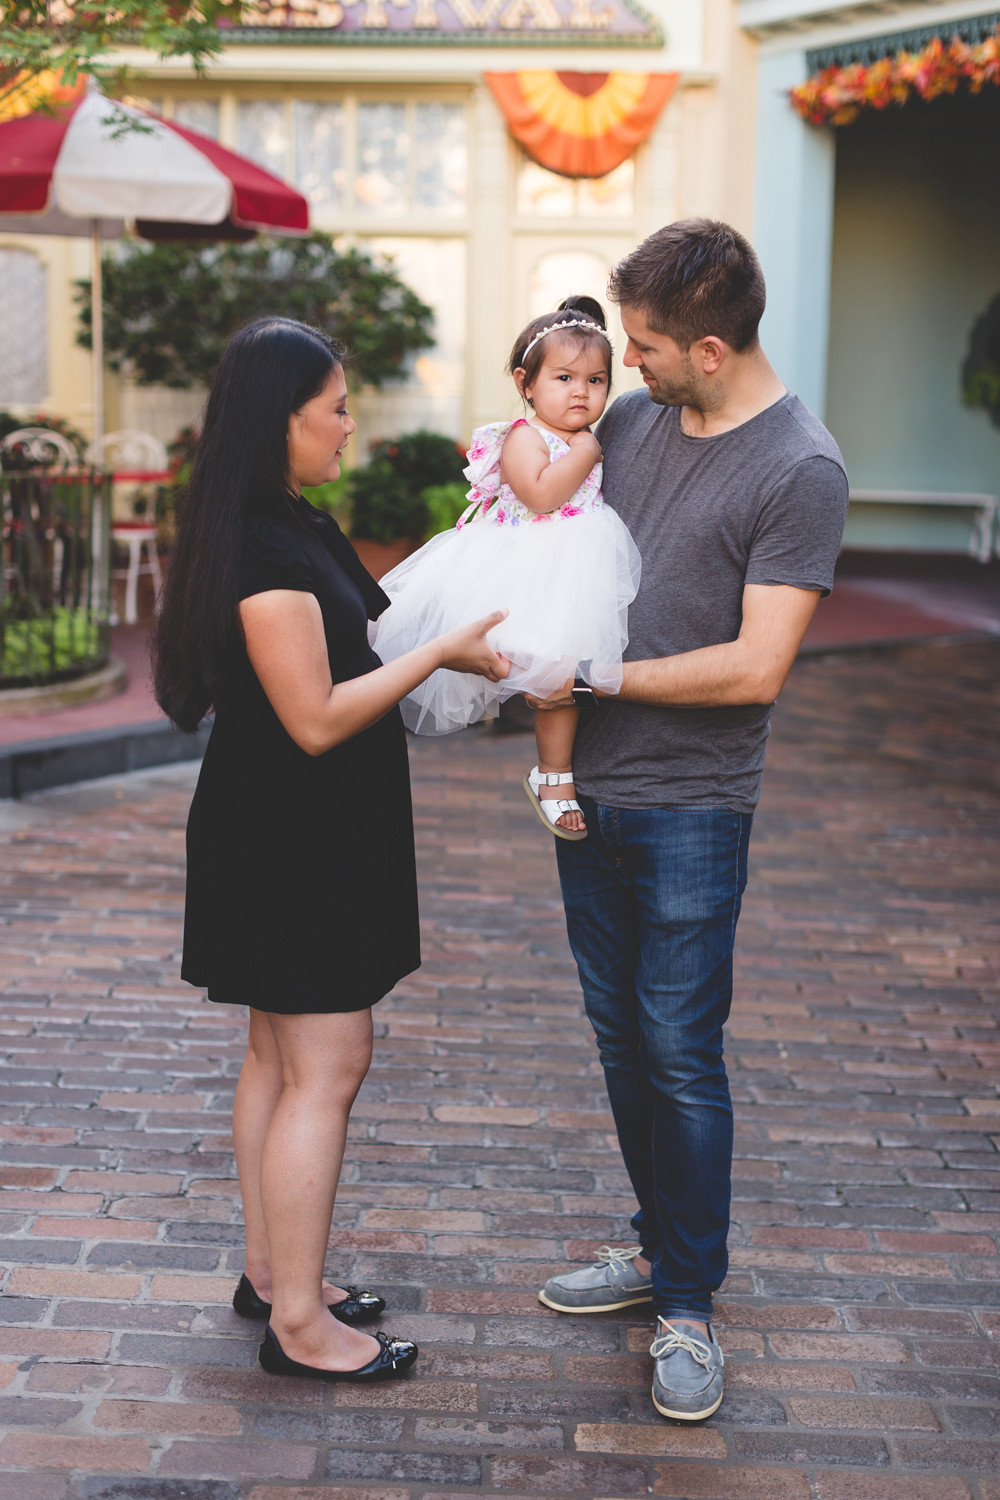 Jaime DiOrio - Disney Family Session - Orlando Family Photographer - Magic Kingdom Family Session - Documentary Photographer (12).jpg